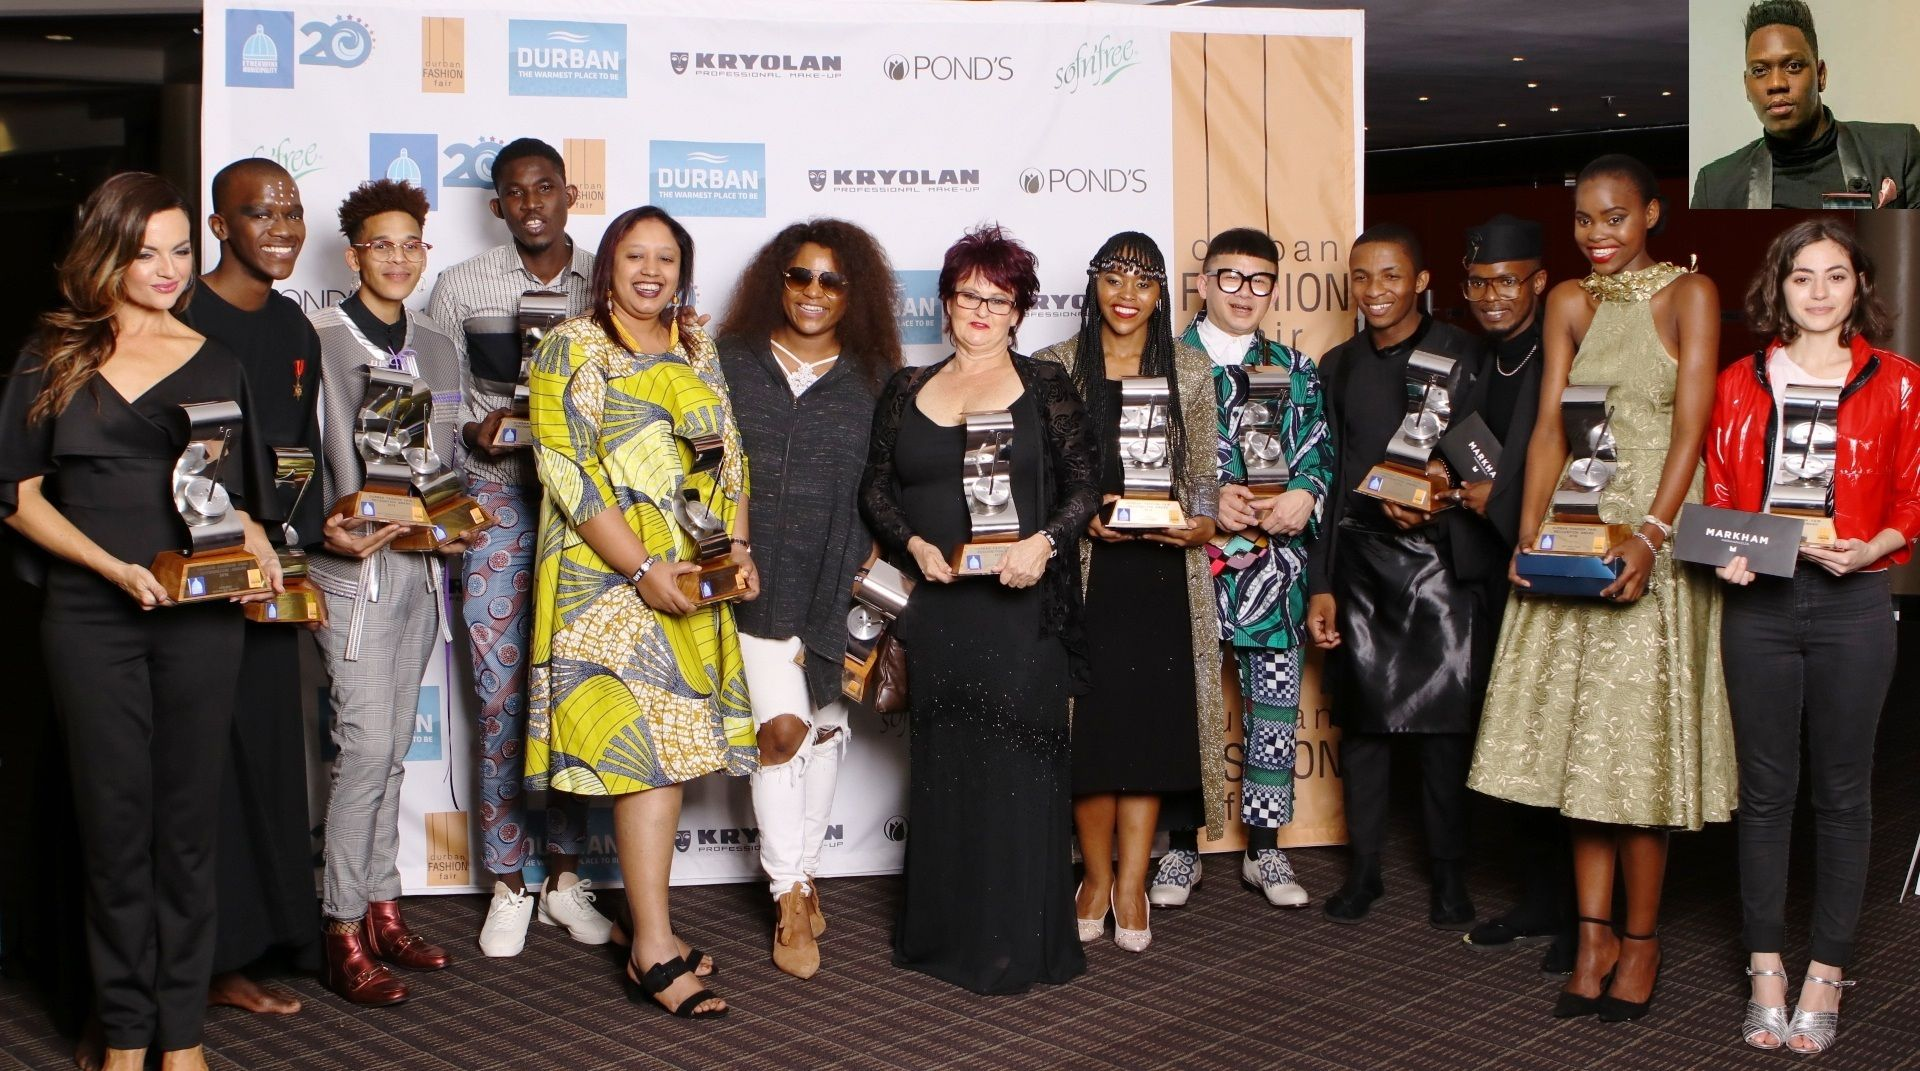 The 2018 Durban Fashion Fair Winners Are… photo